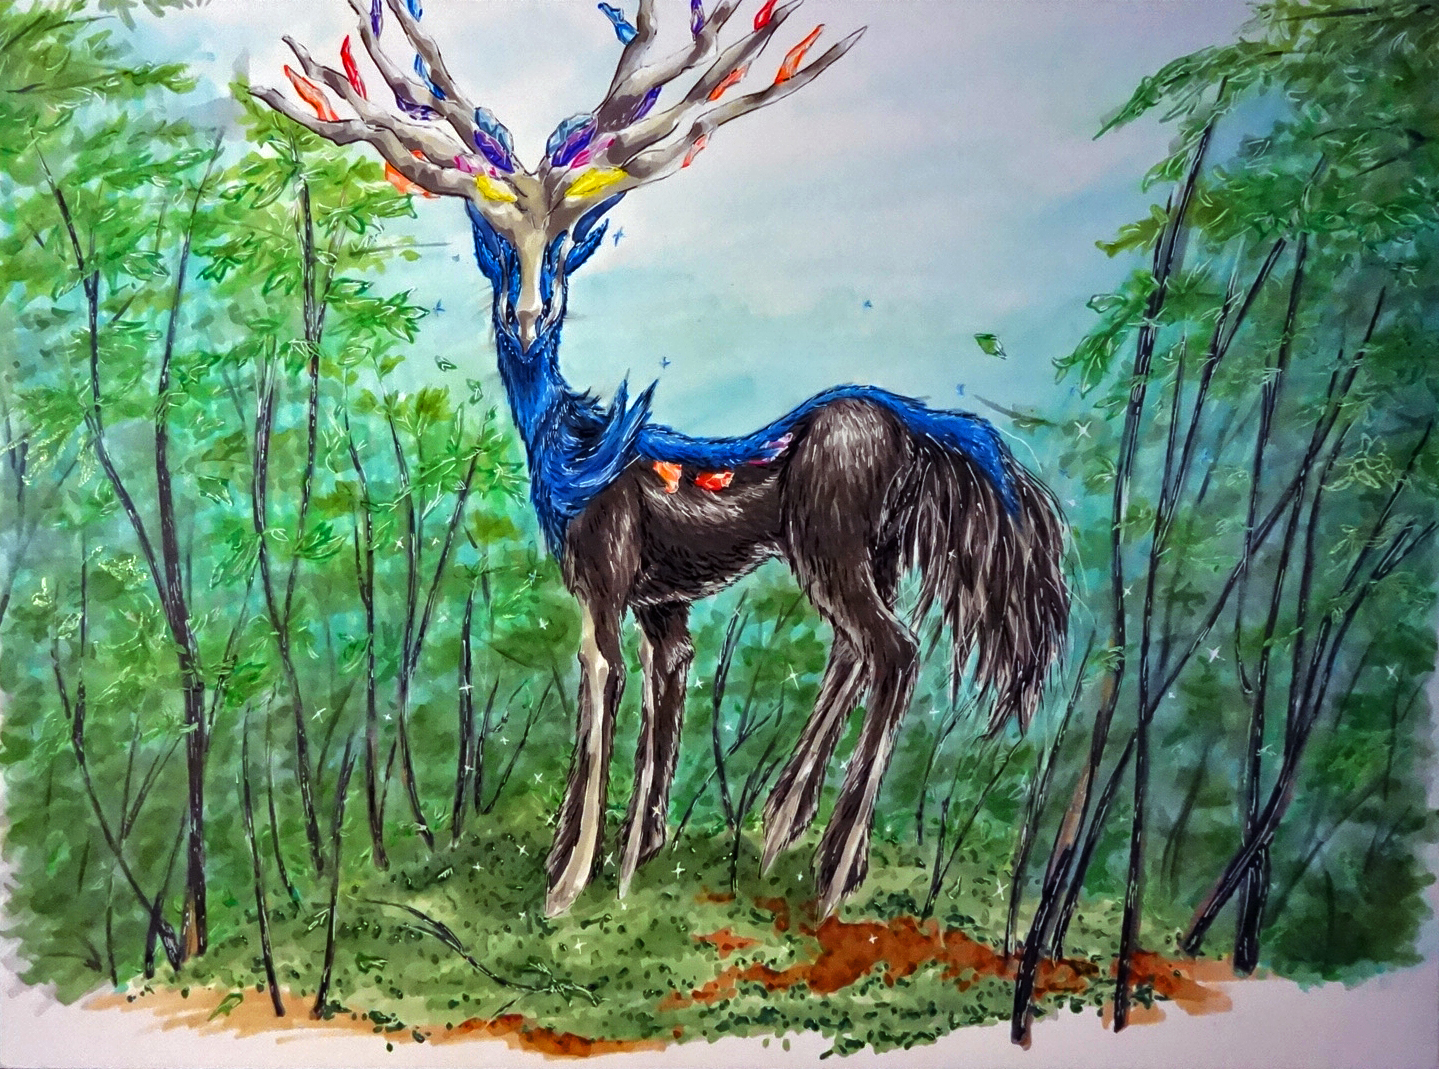 Xerneas - A Chance Encounter